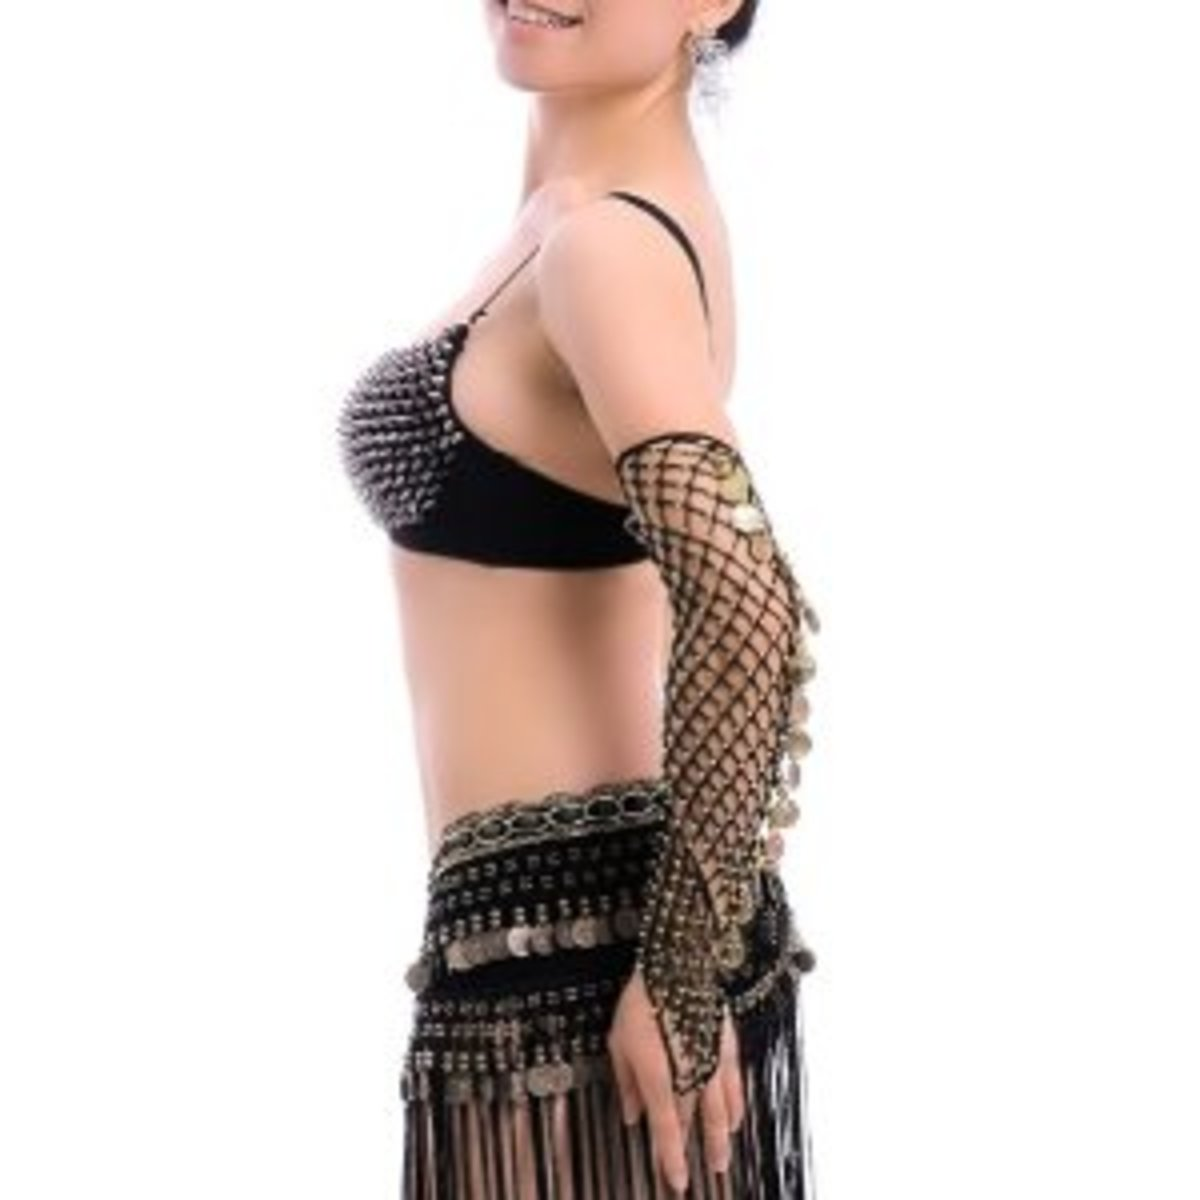 forms-of-bellydance